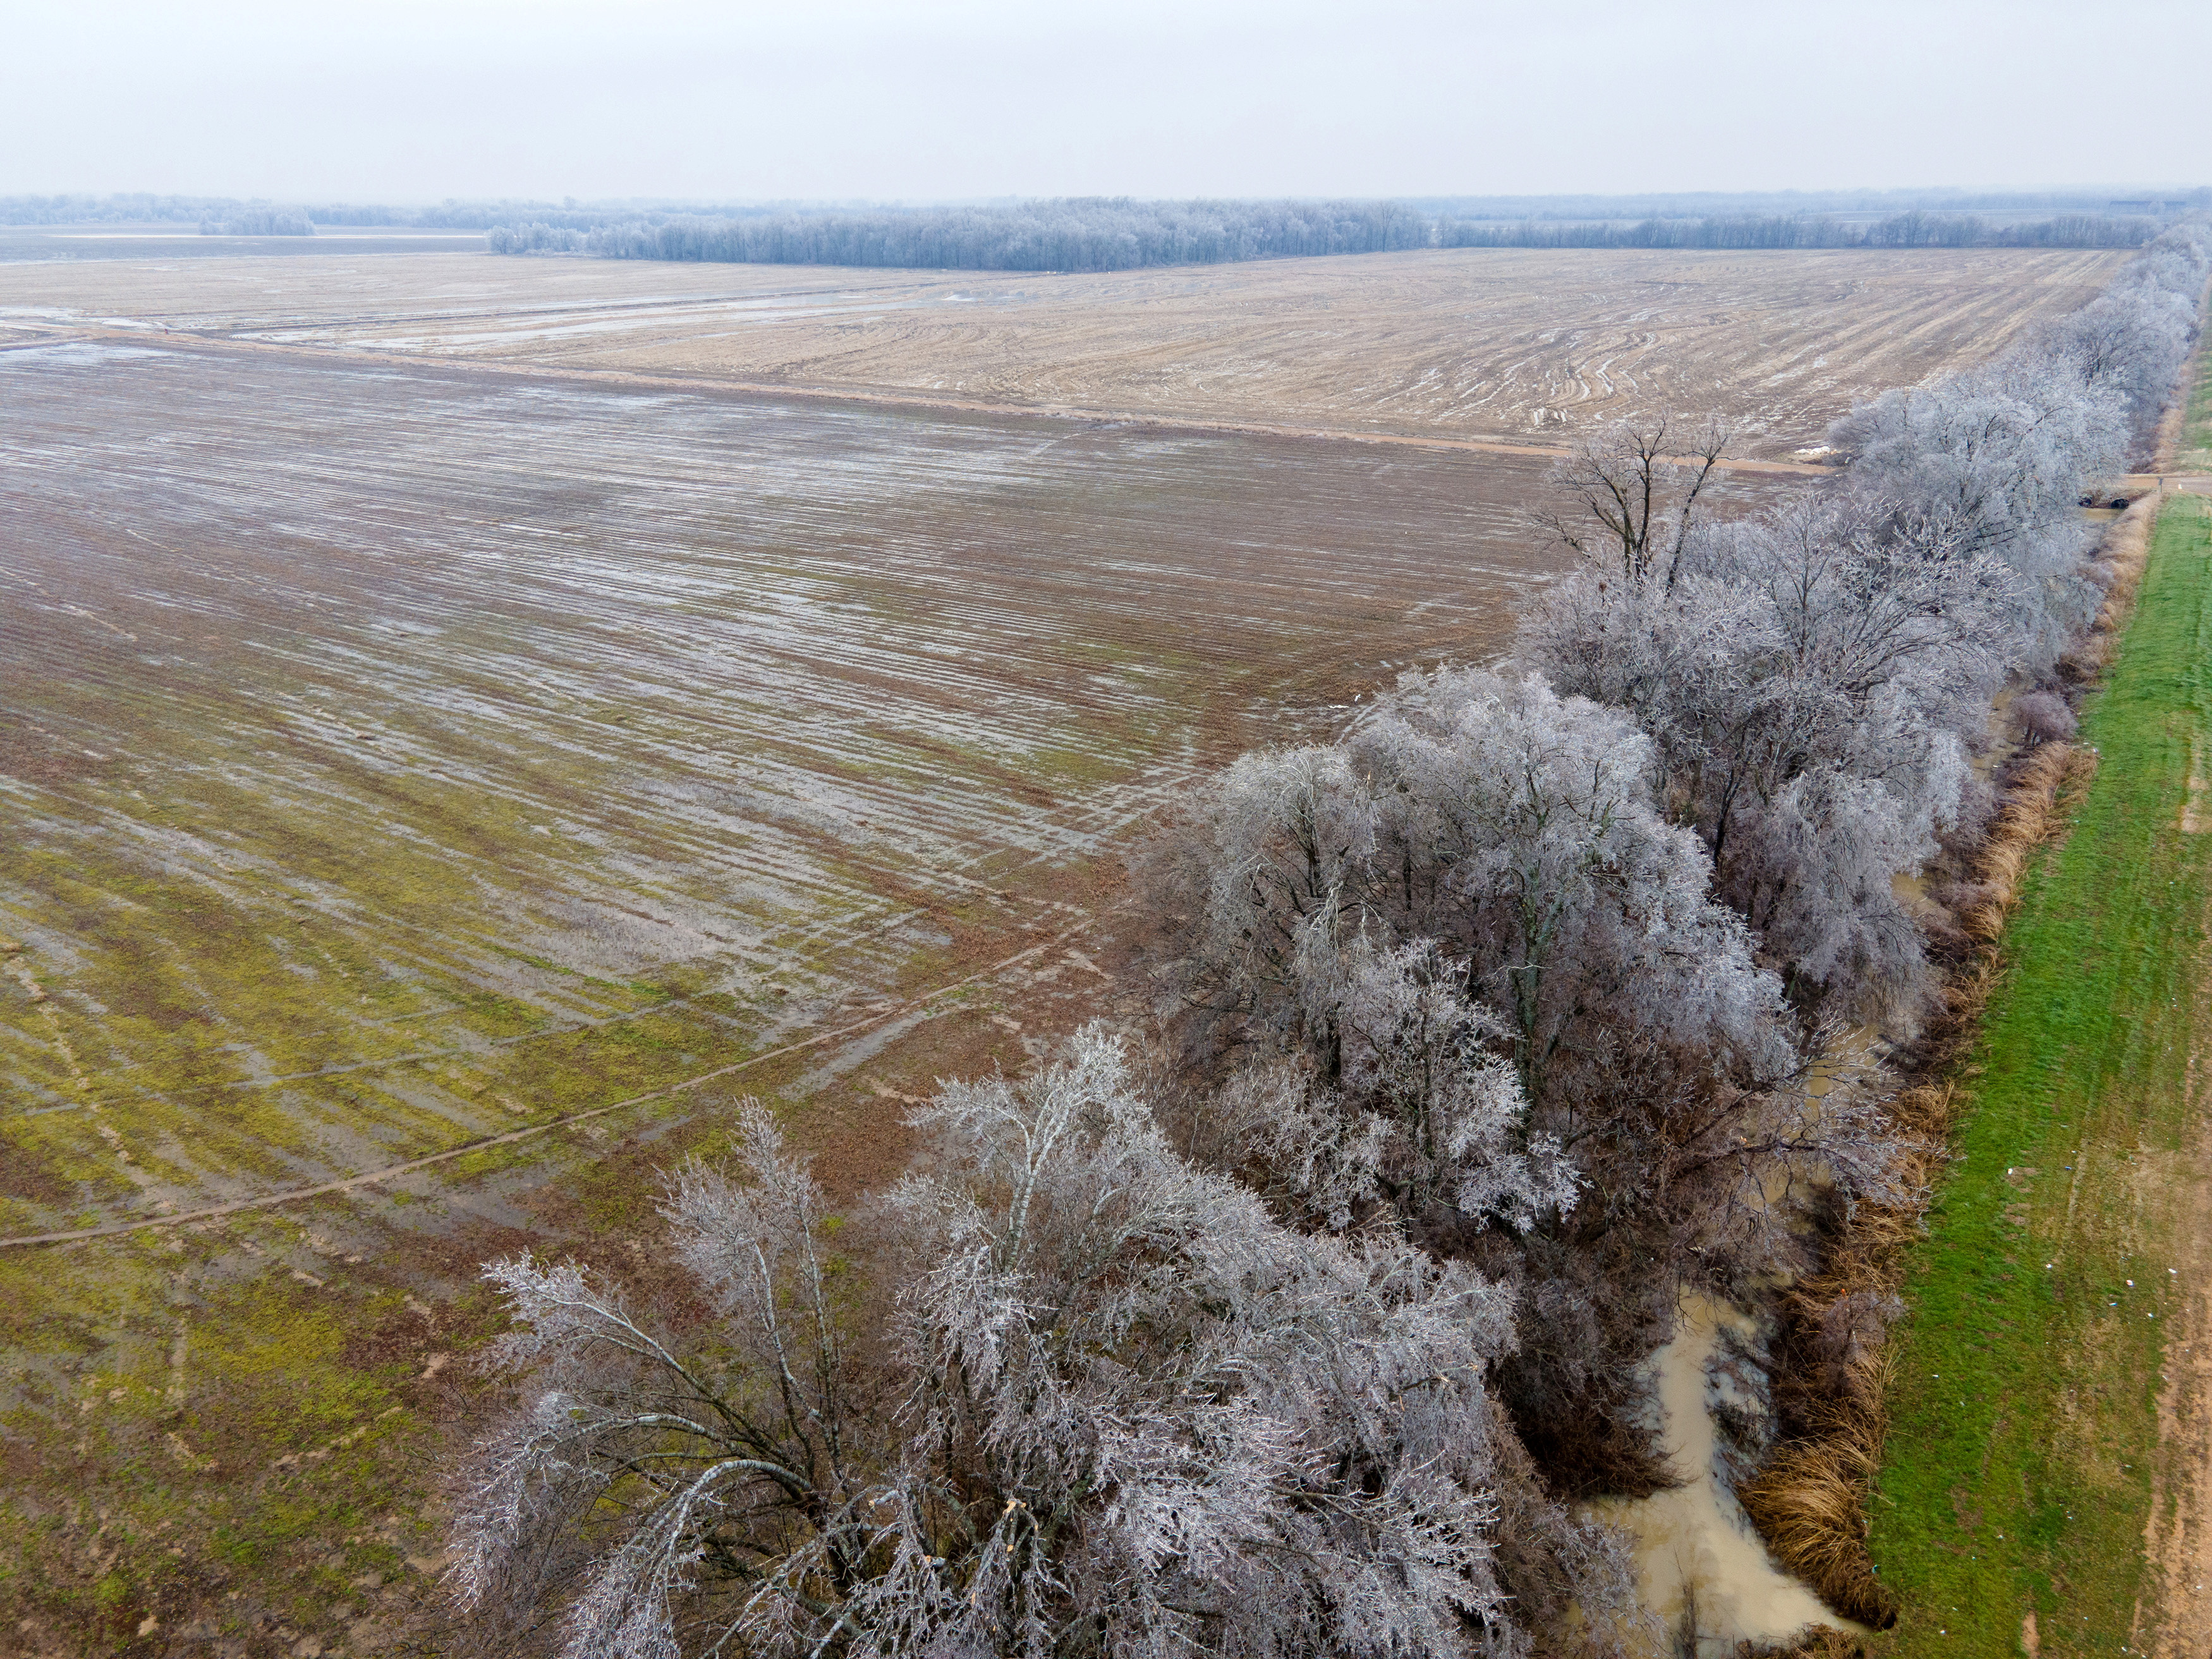 Ice covers a row of trees alongside farmland during extreme cold weather in Mound Bayou, Mississippi, U.S., February 11, 2021.  REUTERS/Rory Doyle